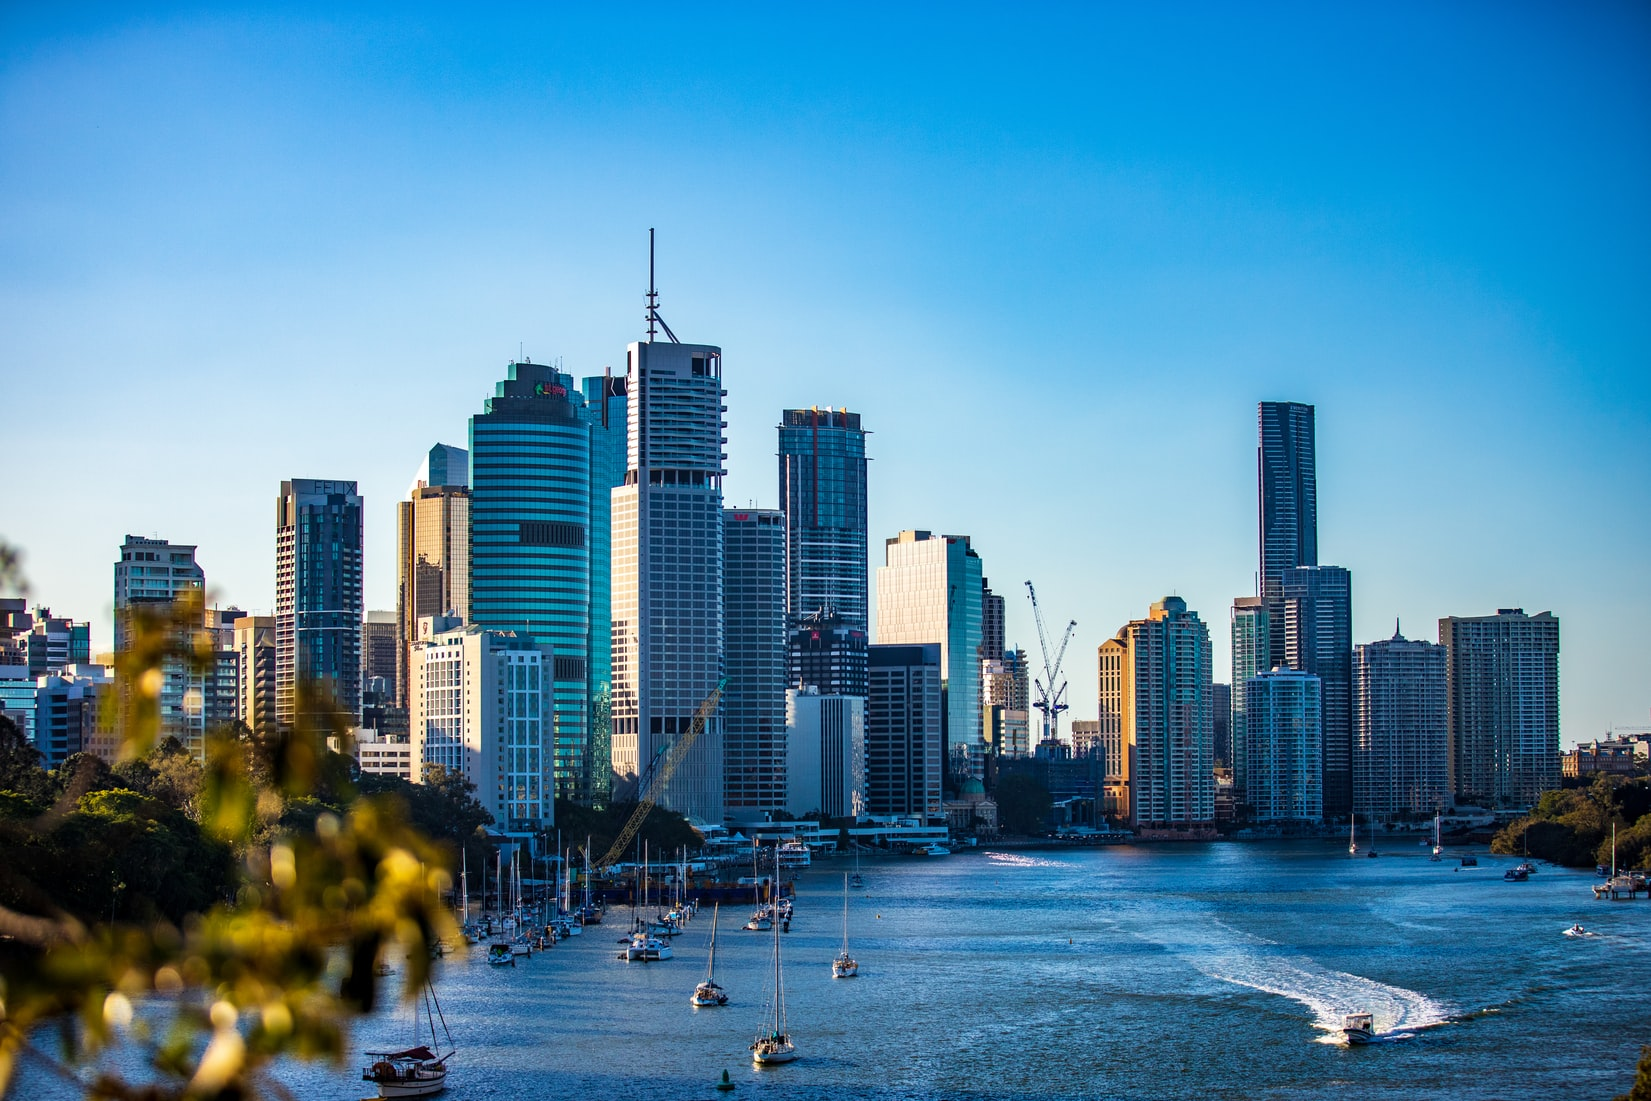 Image of the Brisbane City